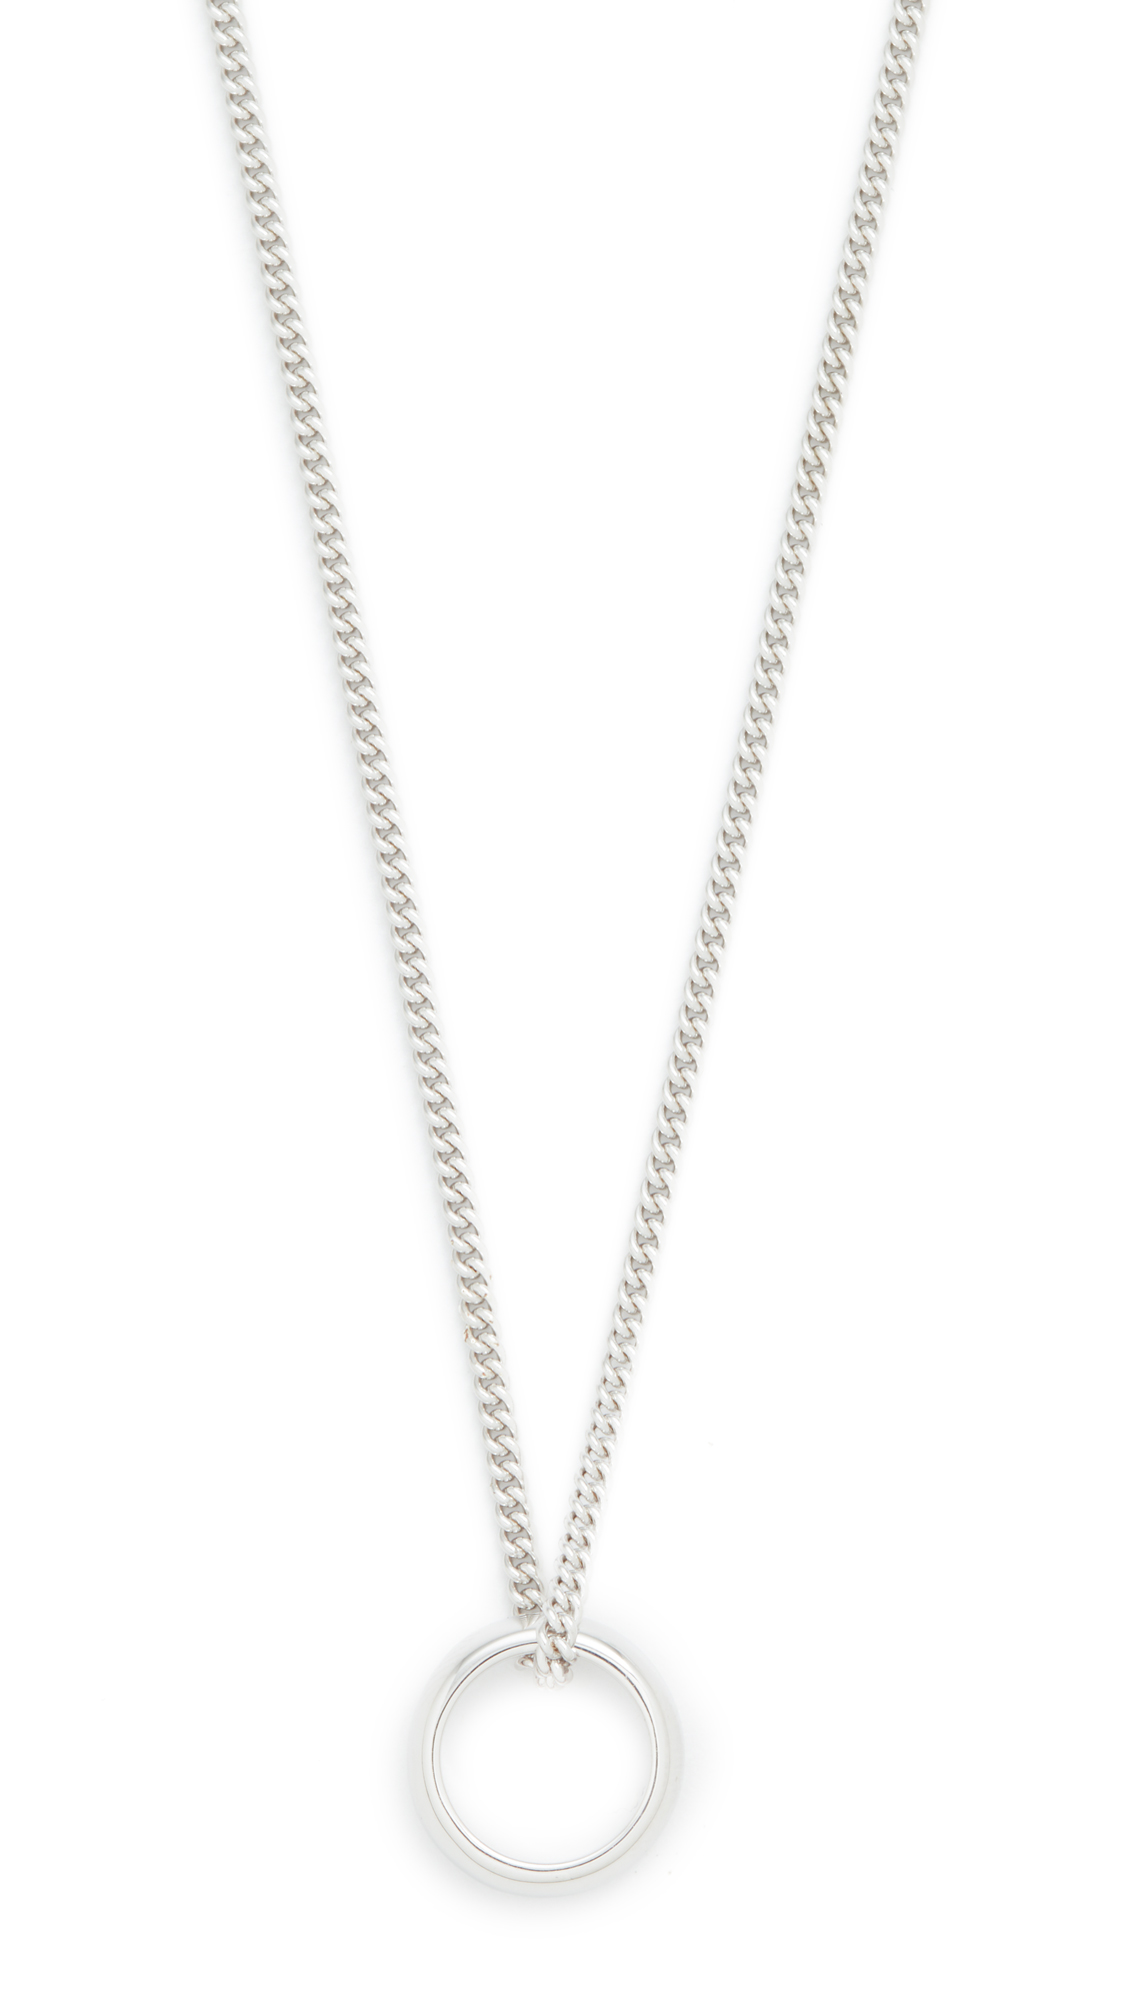 necklaces apc necklace en designer us men ssense for